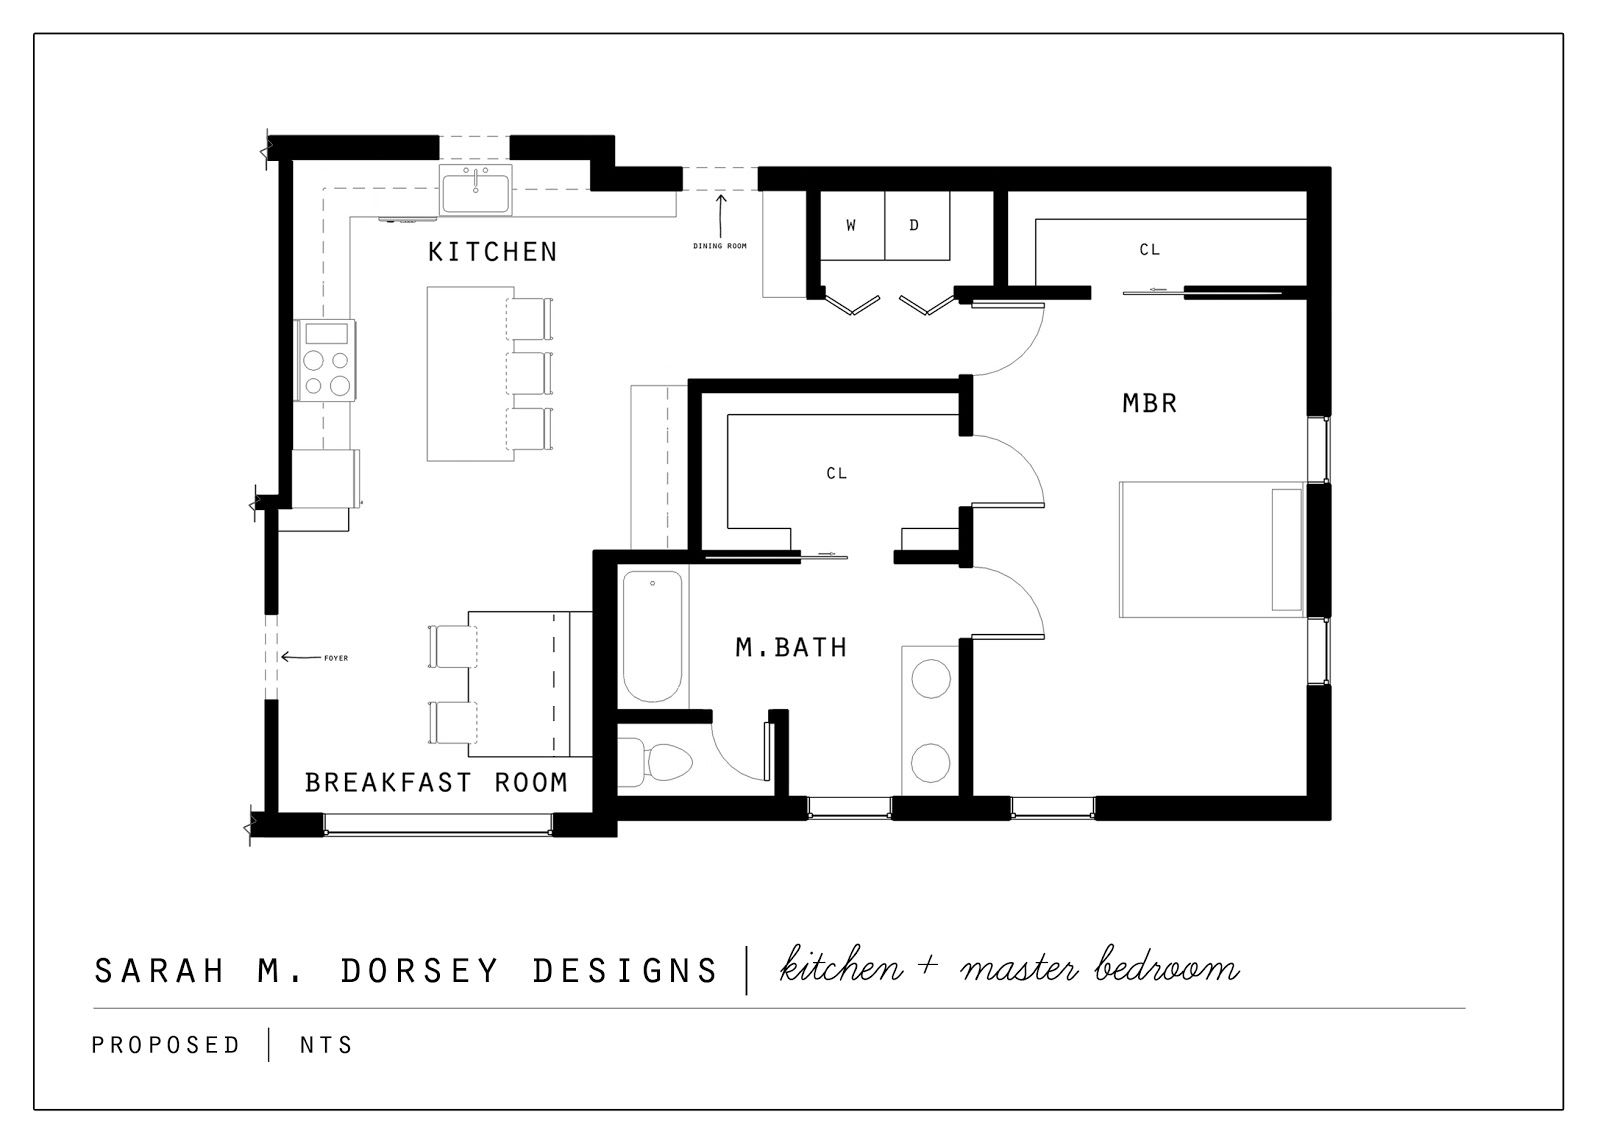 Floor plans for master bedroom additions bedroom addition plans master bedroom suite addition Master bedroom plans with bath